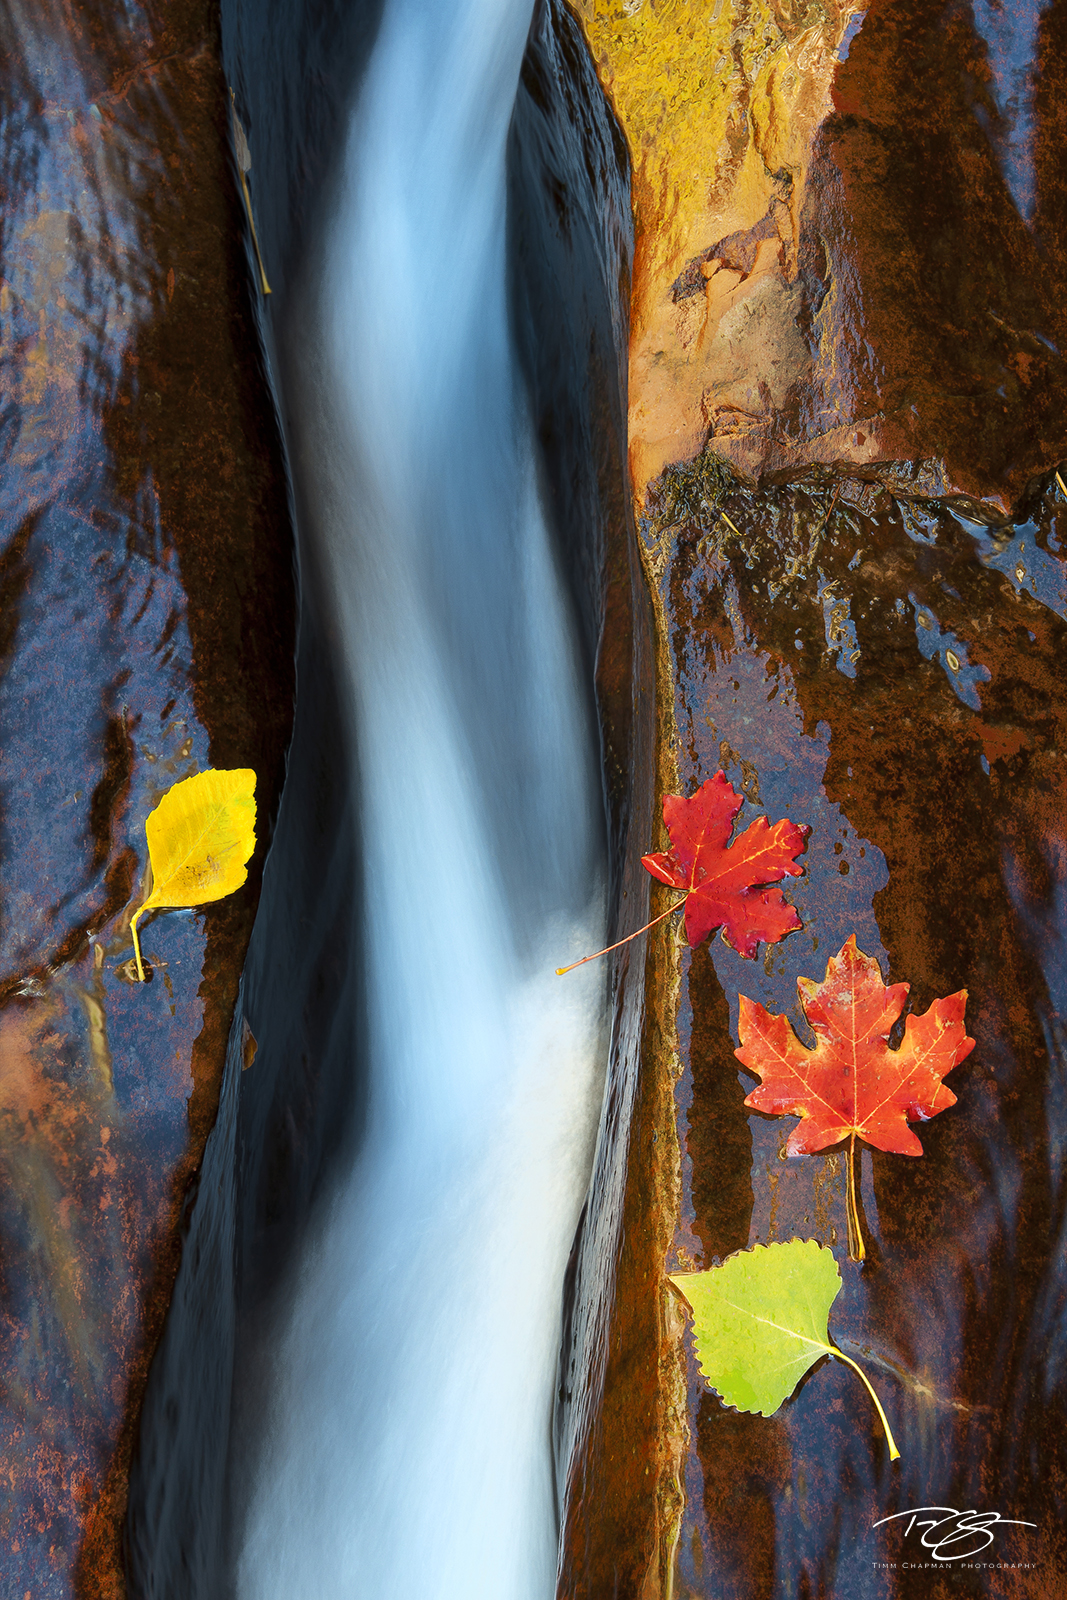 zion national park, zion, zionflow, virgin river, flowing water, golden canyons, golden, light, canyon walls, wet rock, Go with the Flow, utah, photo